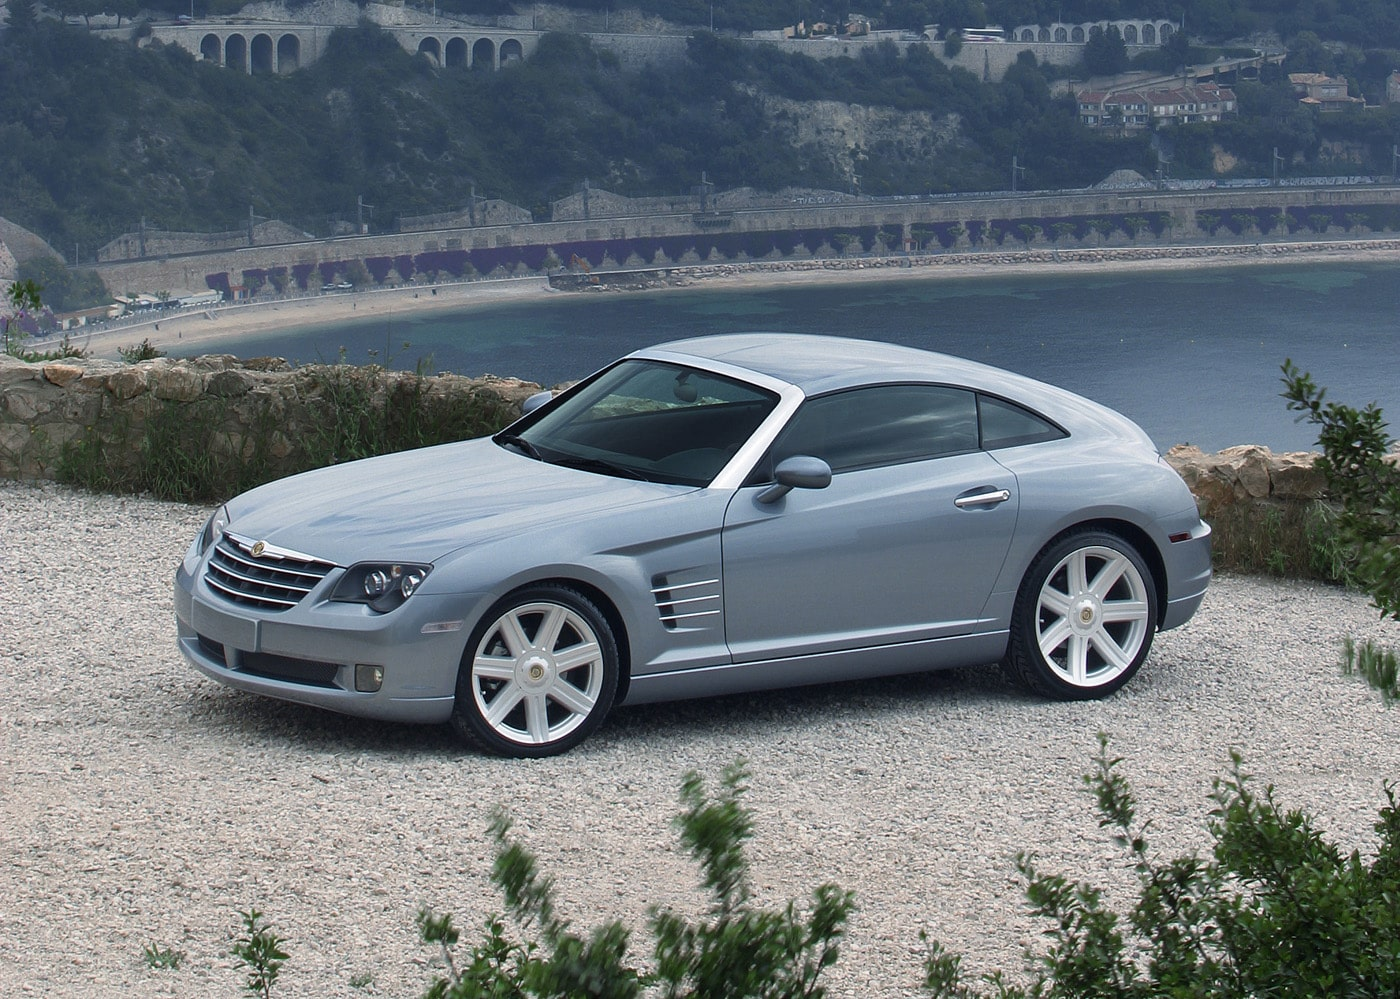 Chrysler Crossfire - 10 cool cars for under £10,000 (The Car Expert)